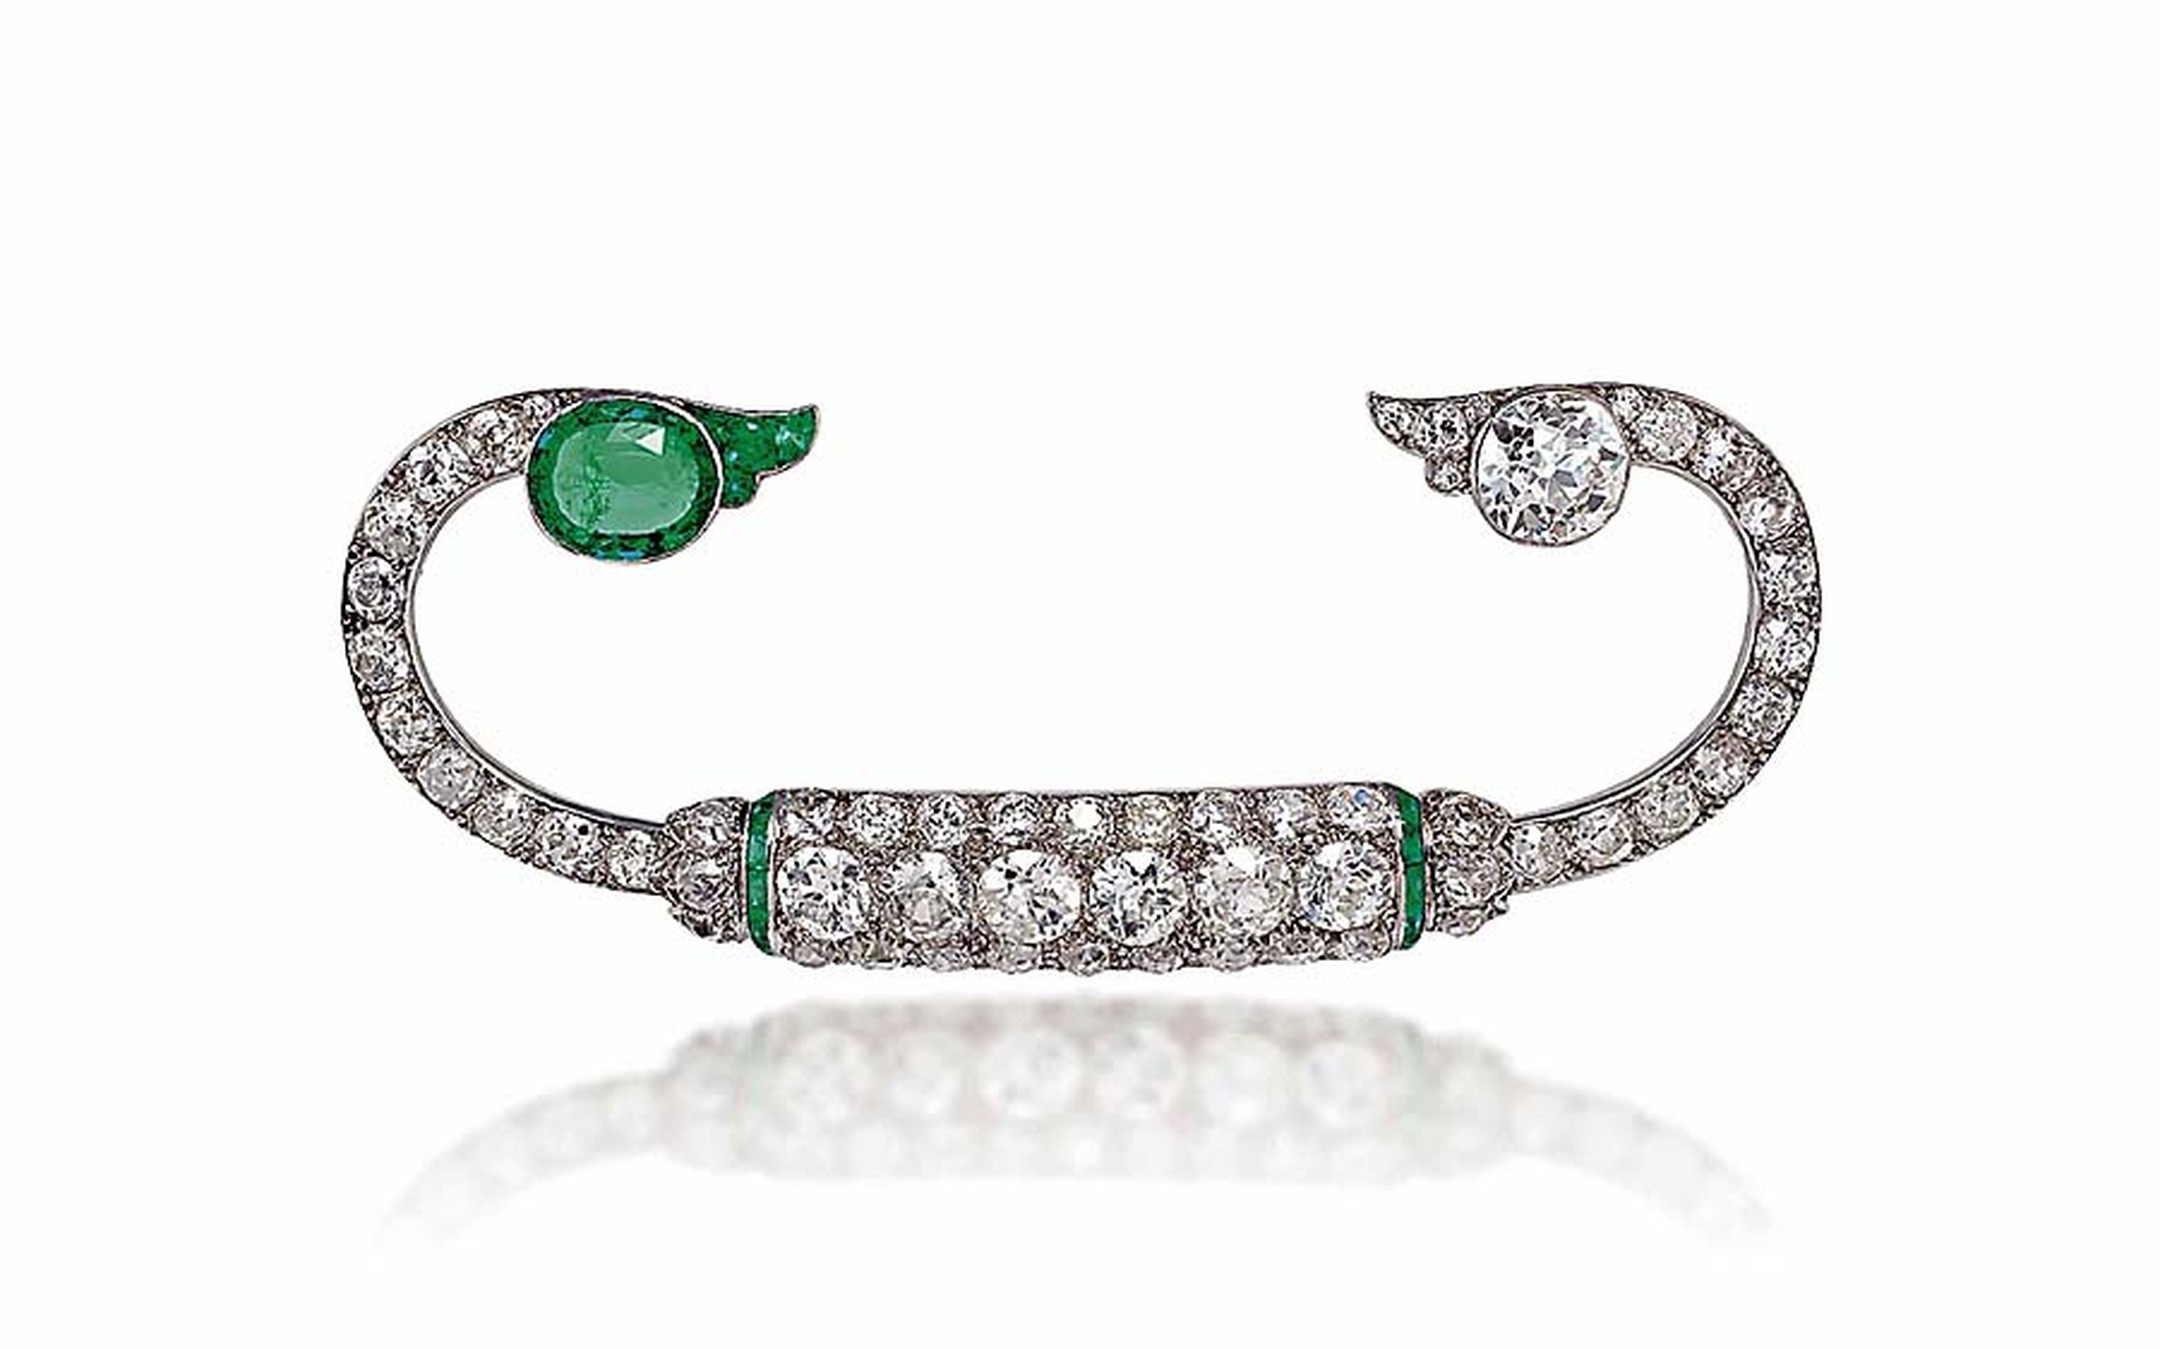 ChristiesLondonImportantJewelsauction005.jpg